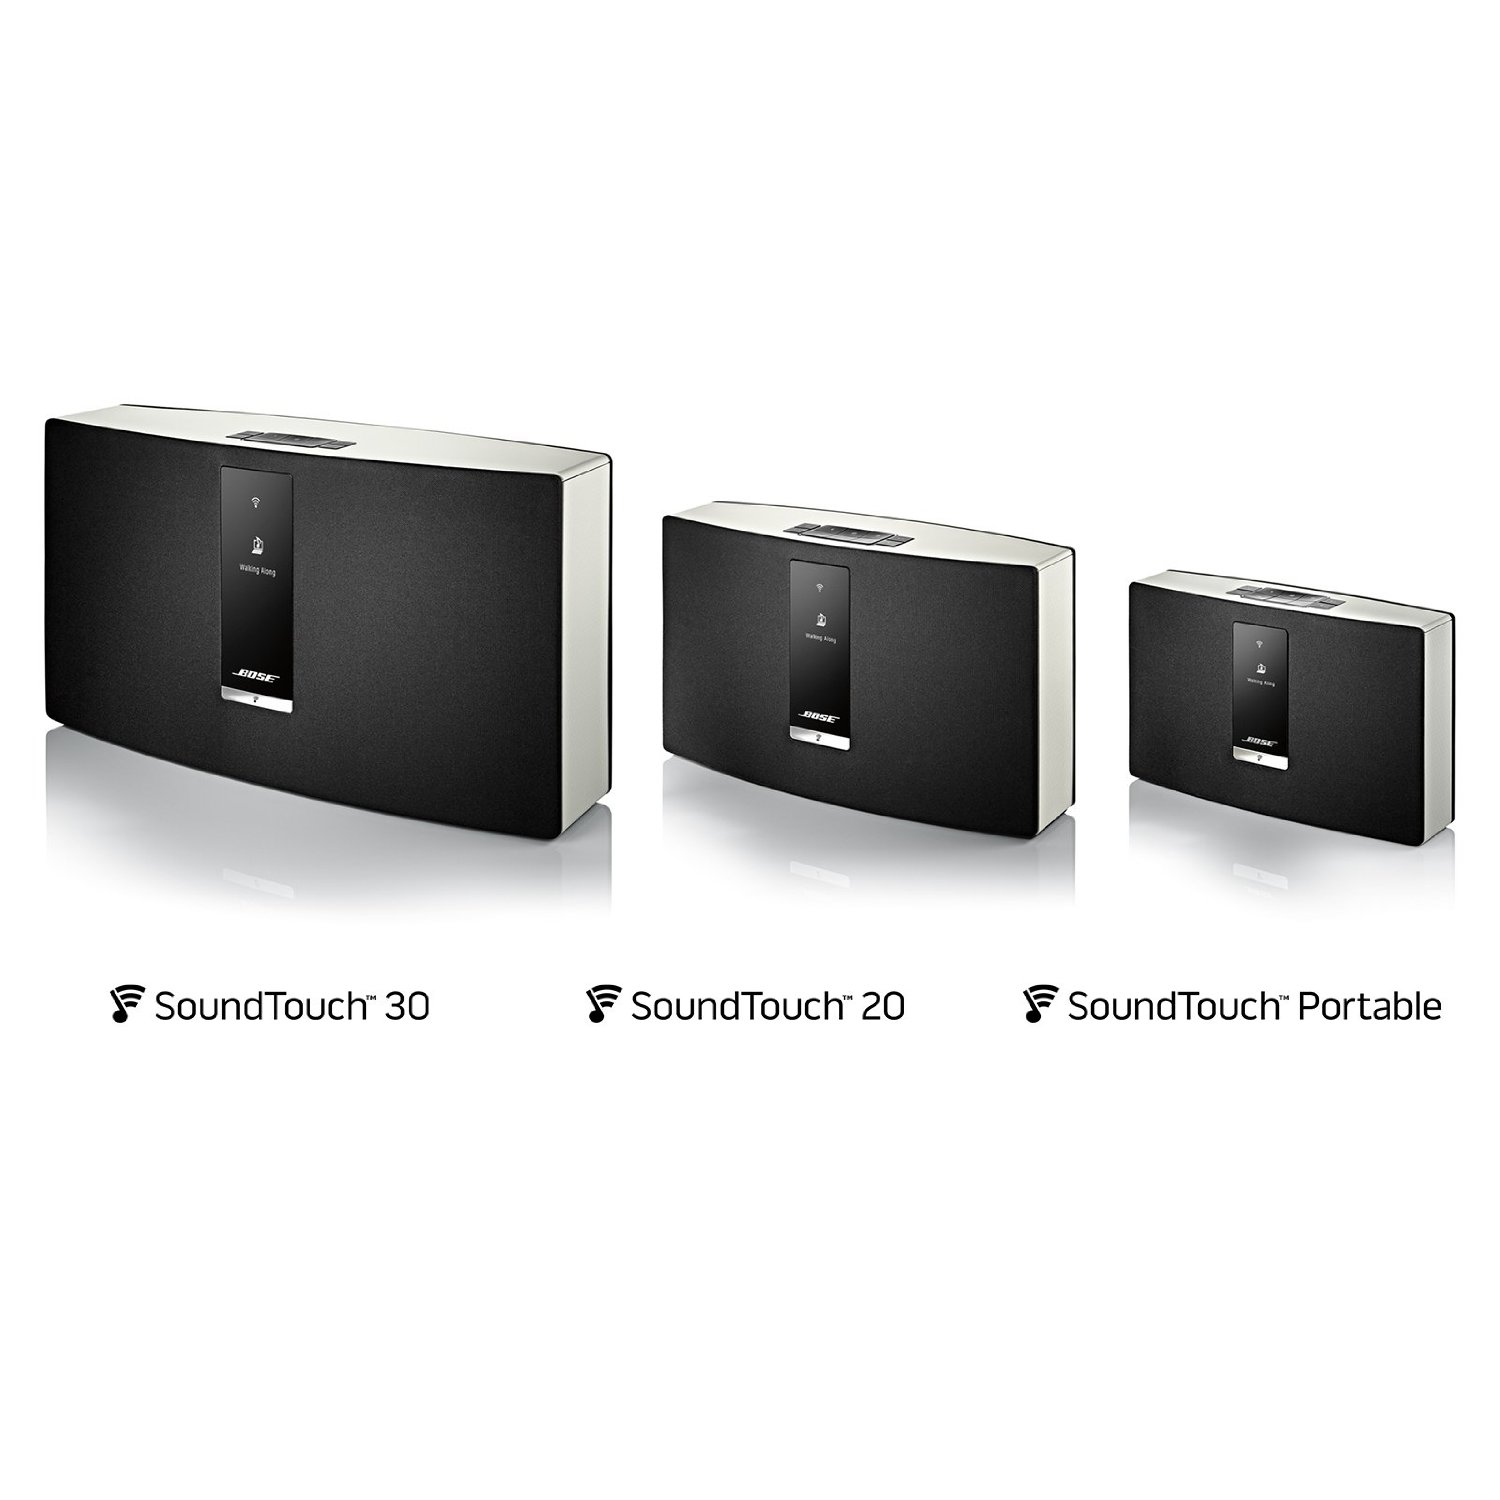 Bose SoundTouch models